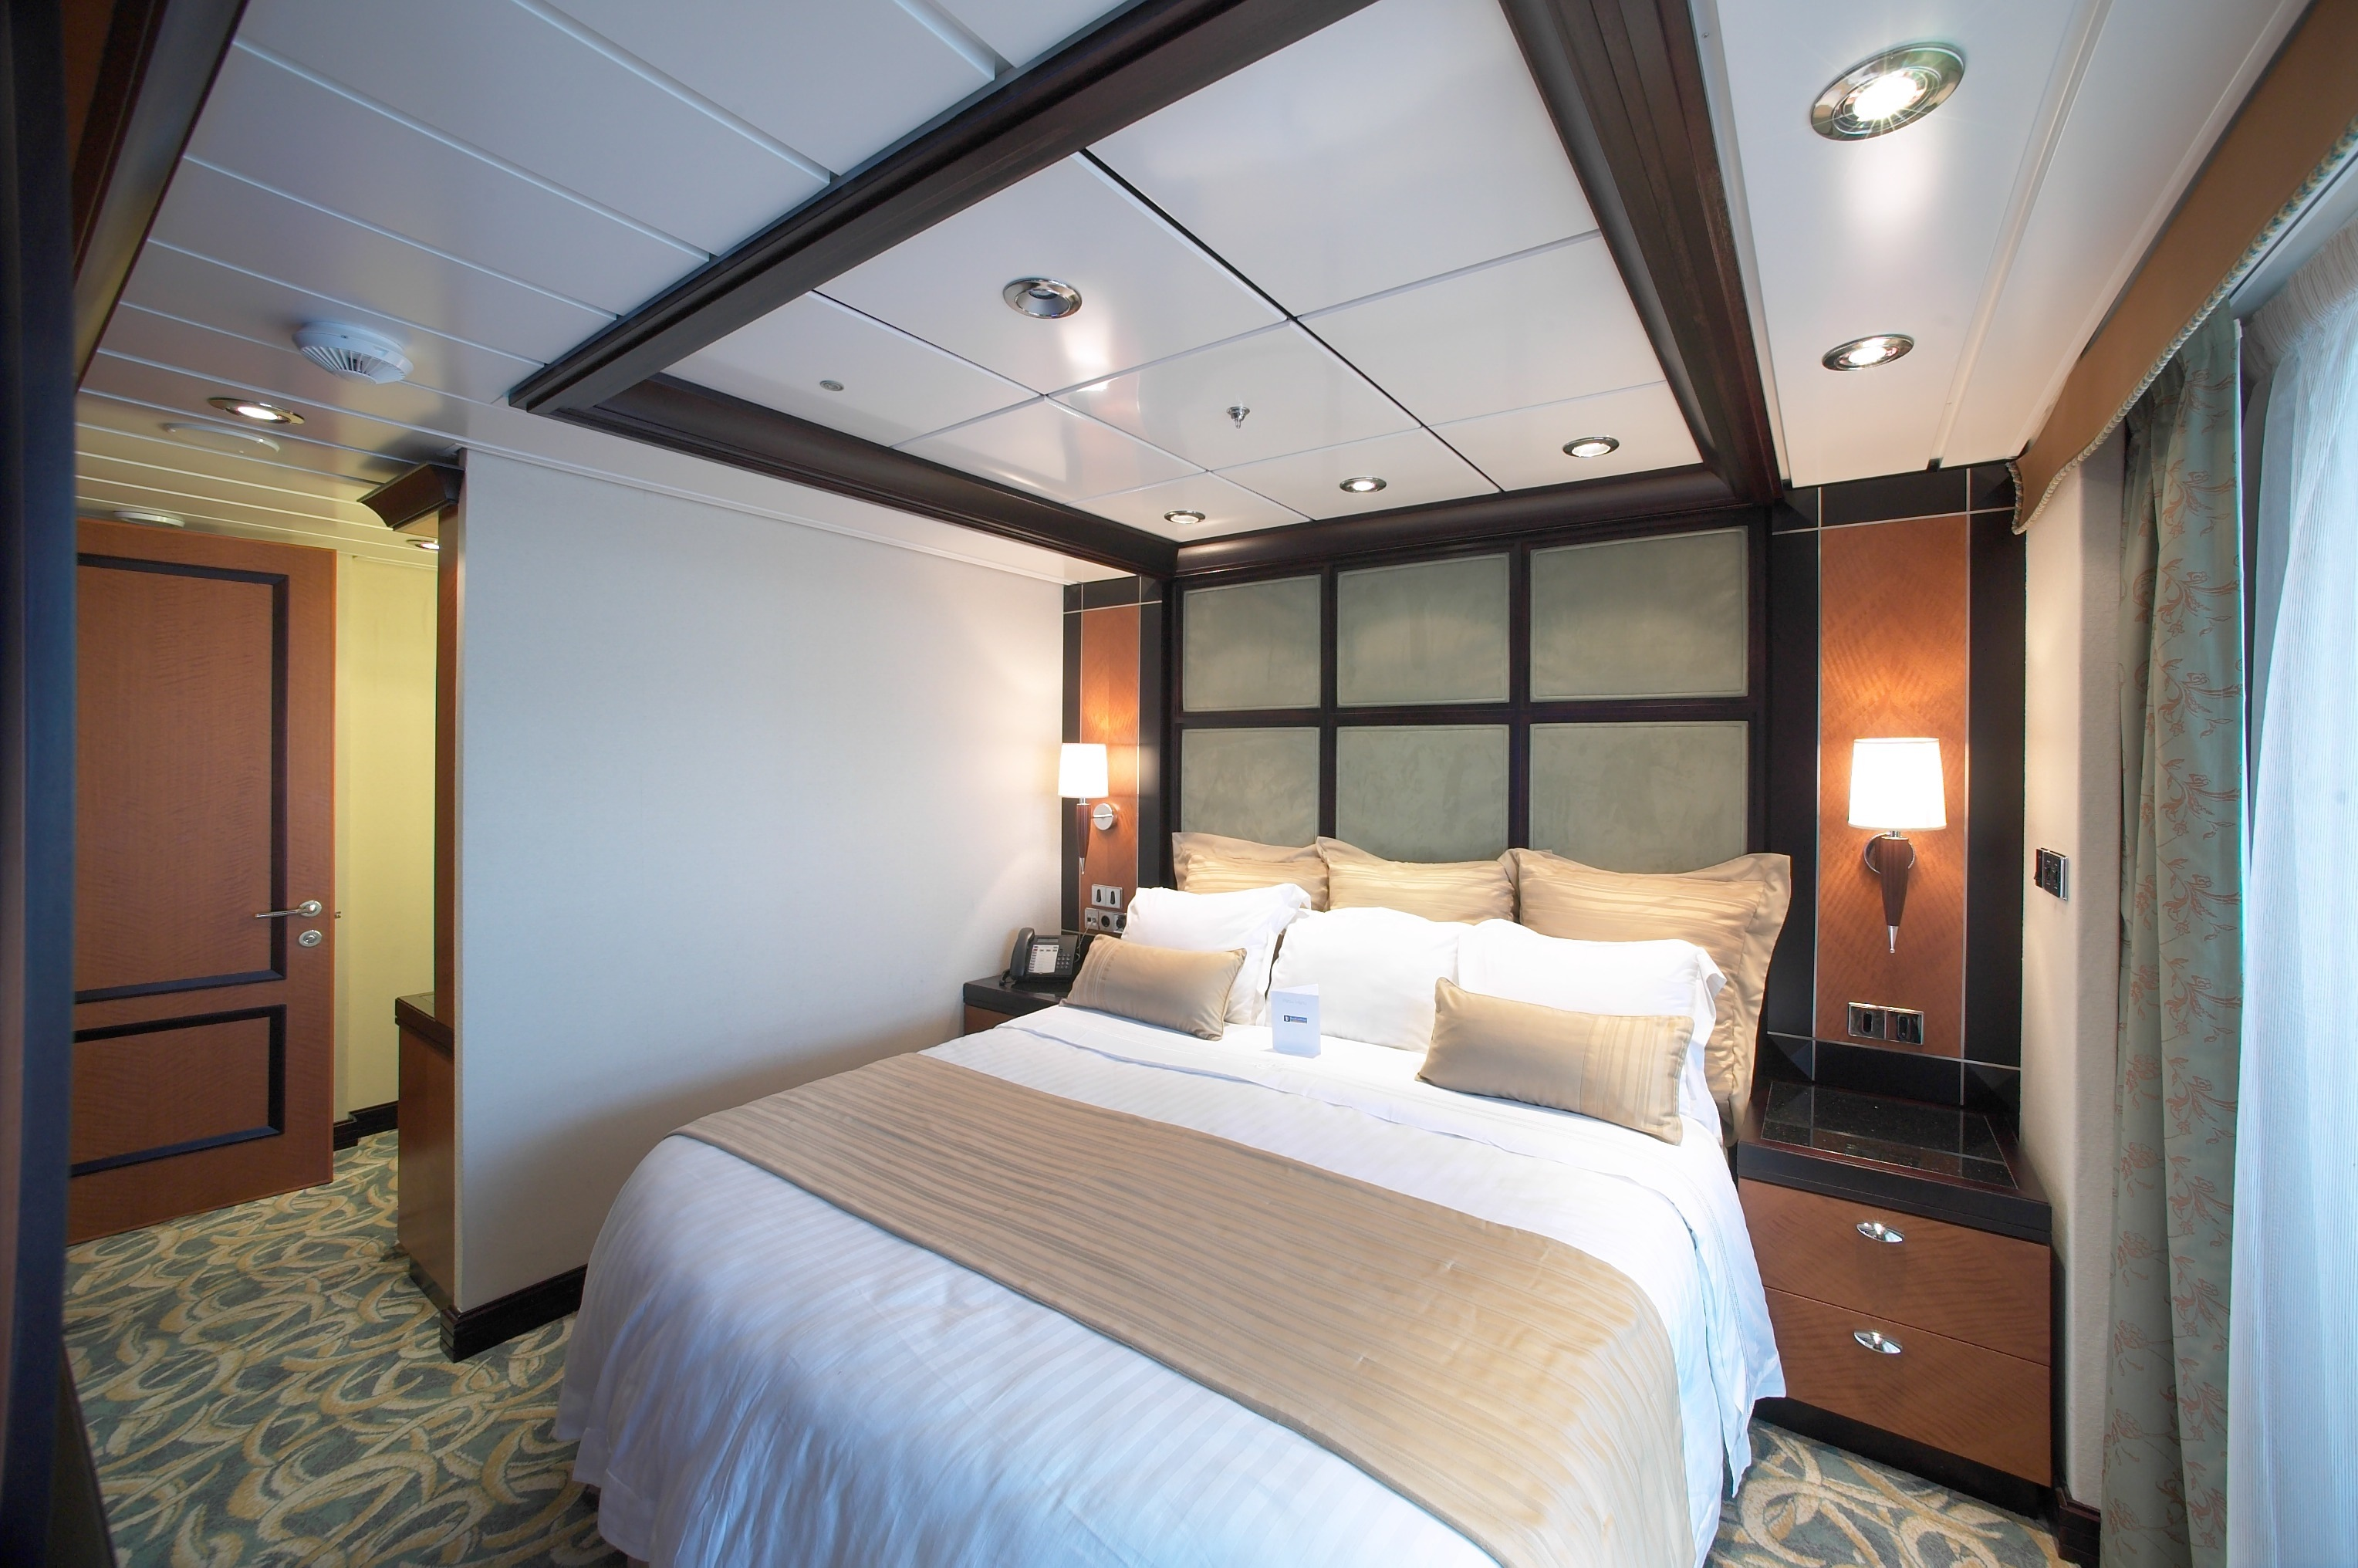 Royal Caribbean International Freedom of the Seas Accommodation Presidential Family Suite 5.jpg